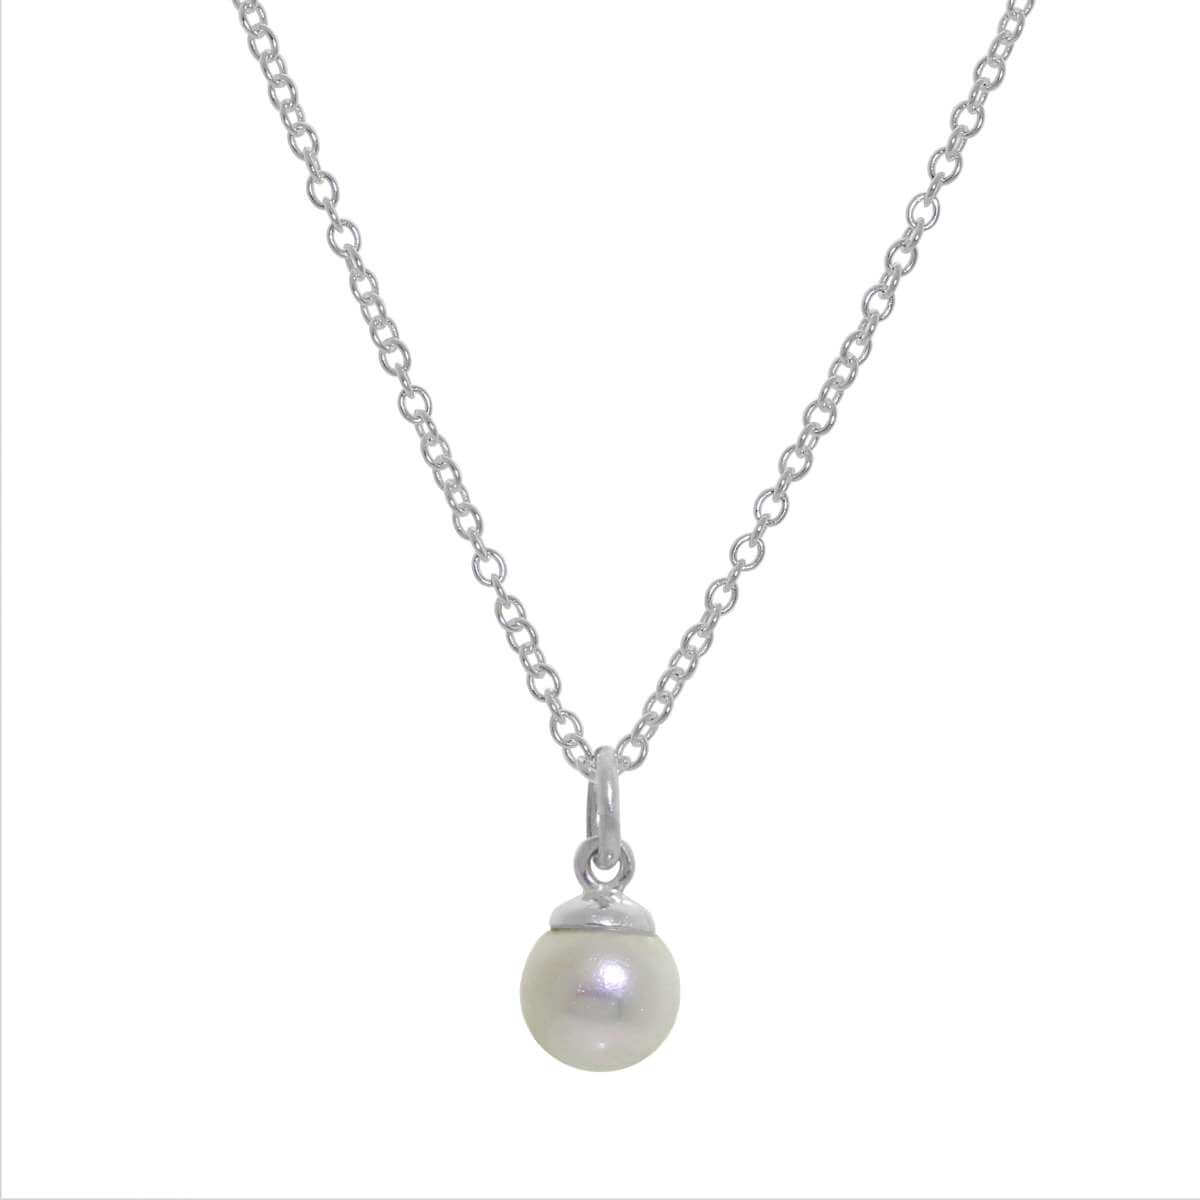 Sterling Silver & Freshwater Pearl Belcher Necklace 16 - 32 Inches